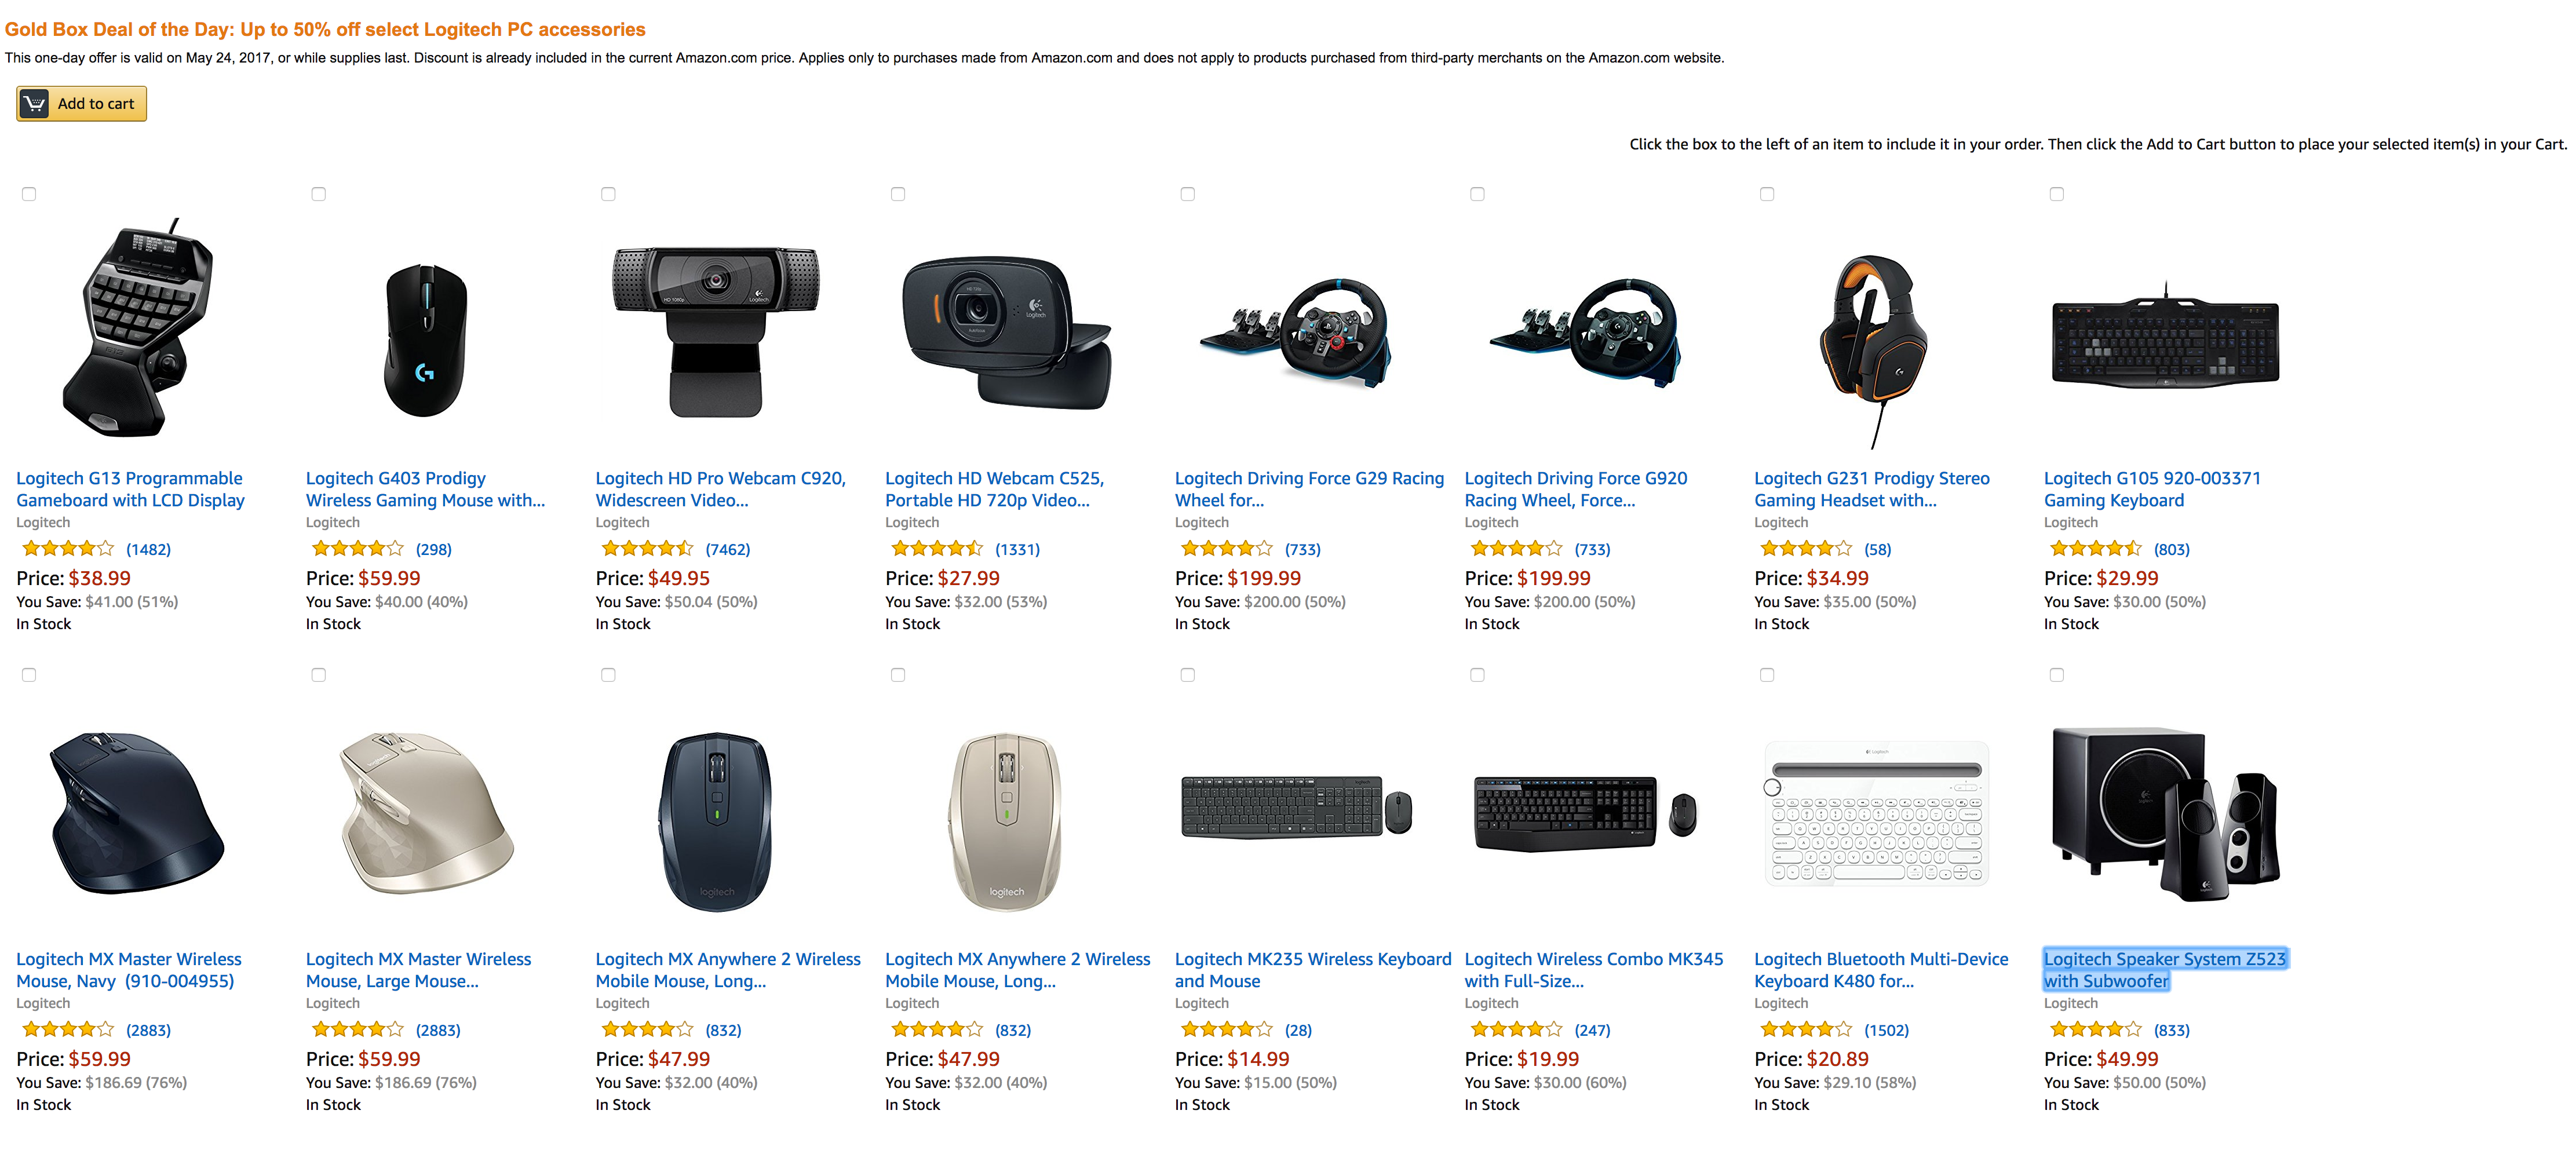 e01407b454a Amazon 1-Day Logitech Sale up to 50% off: keyboards & more from $15 ...